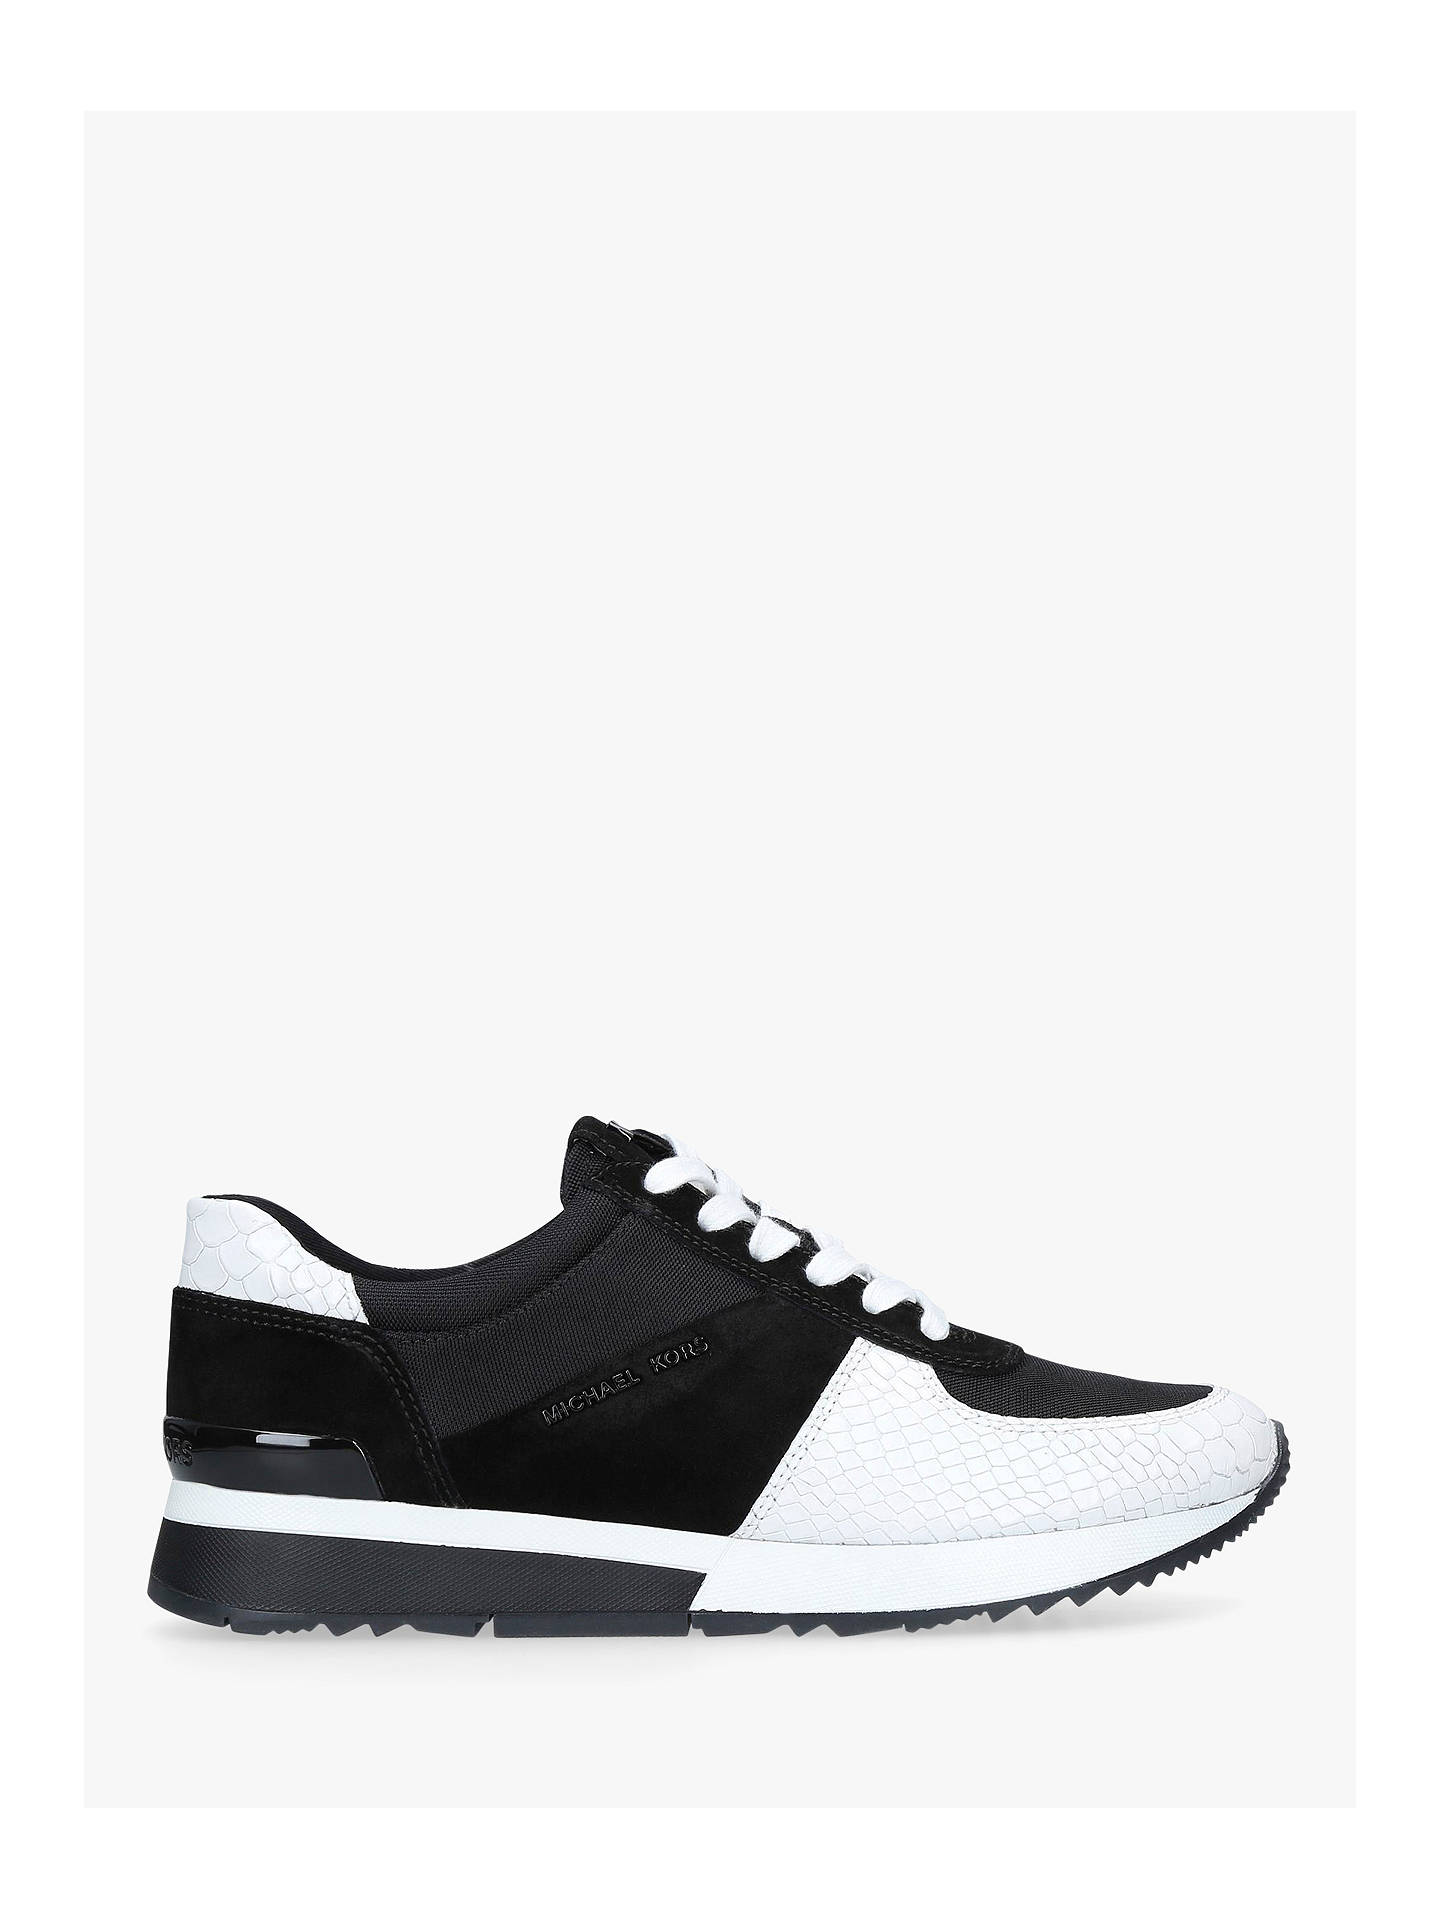 94042c3f4a97 MICHAEL Michael Kors Allie Lace Up Trainers at John Lewis   Partners